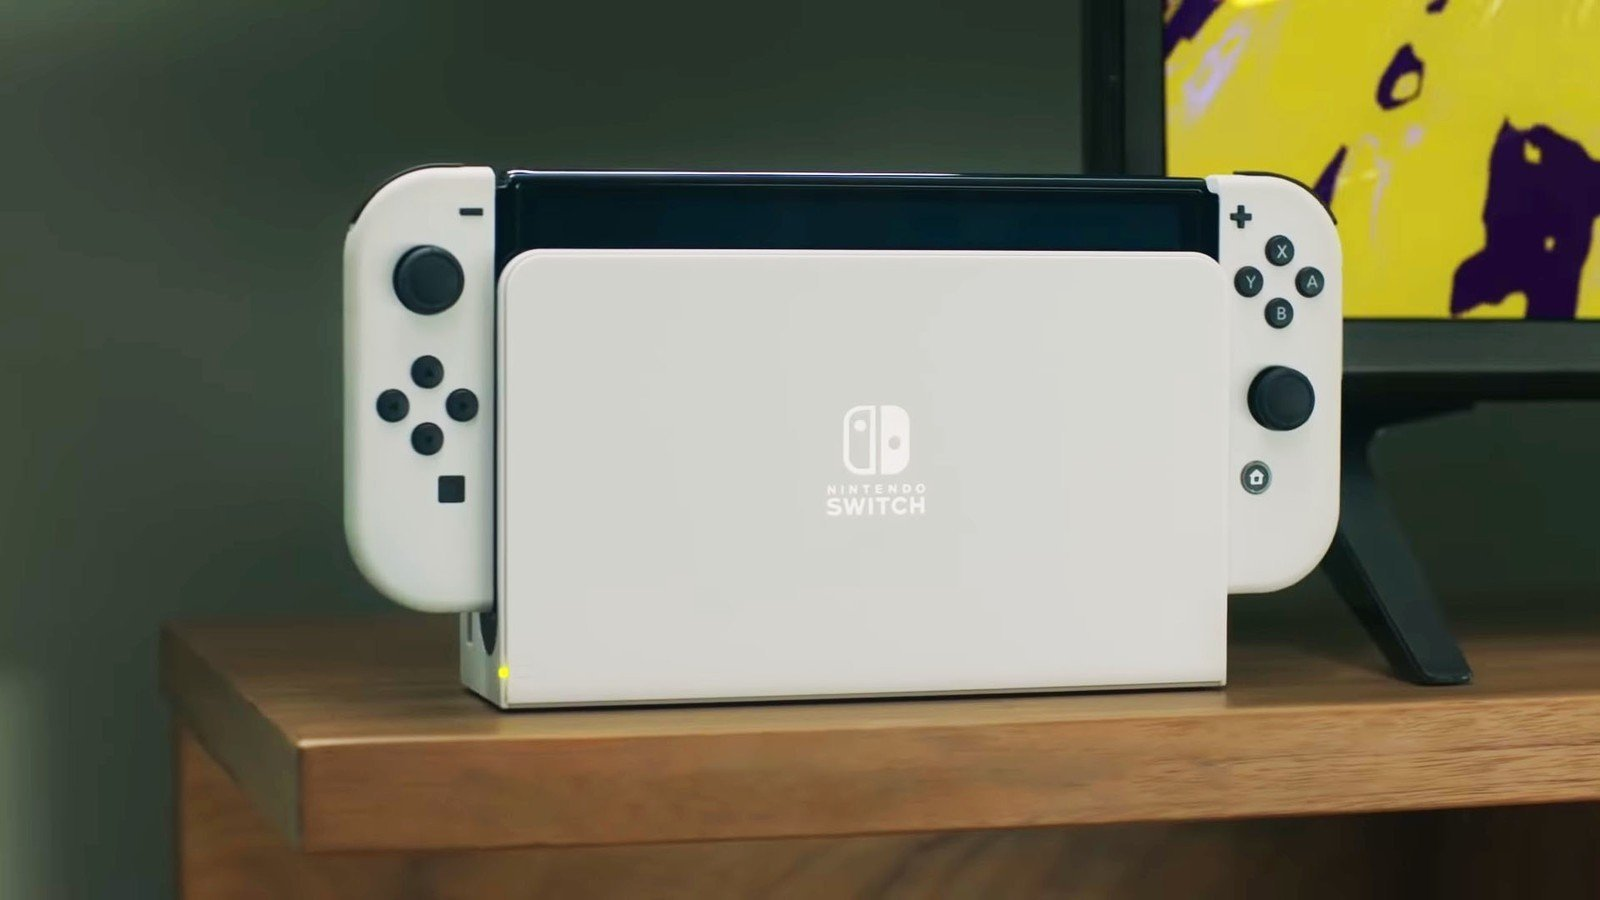 The new OLED model Nintendo Switch is seen in docked mode